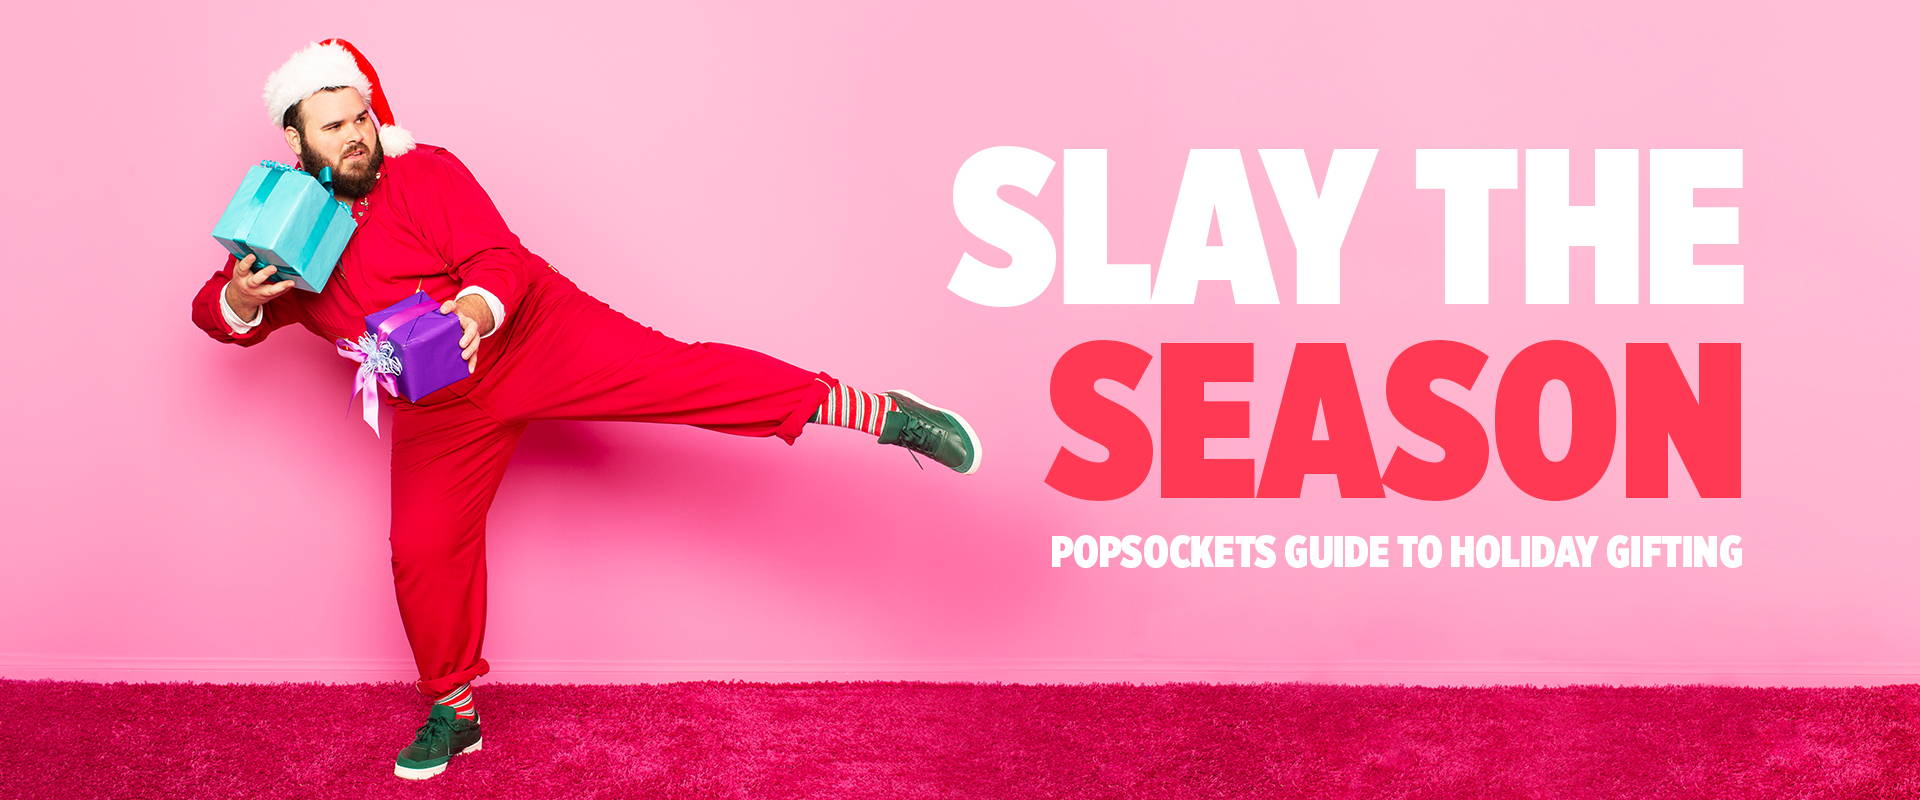 Slay the season Gift Guide